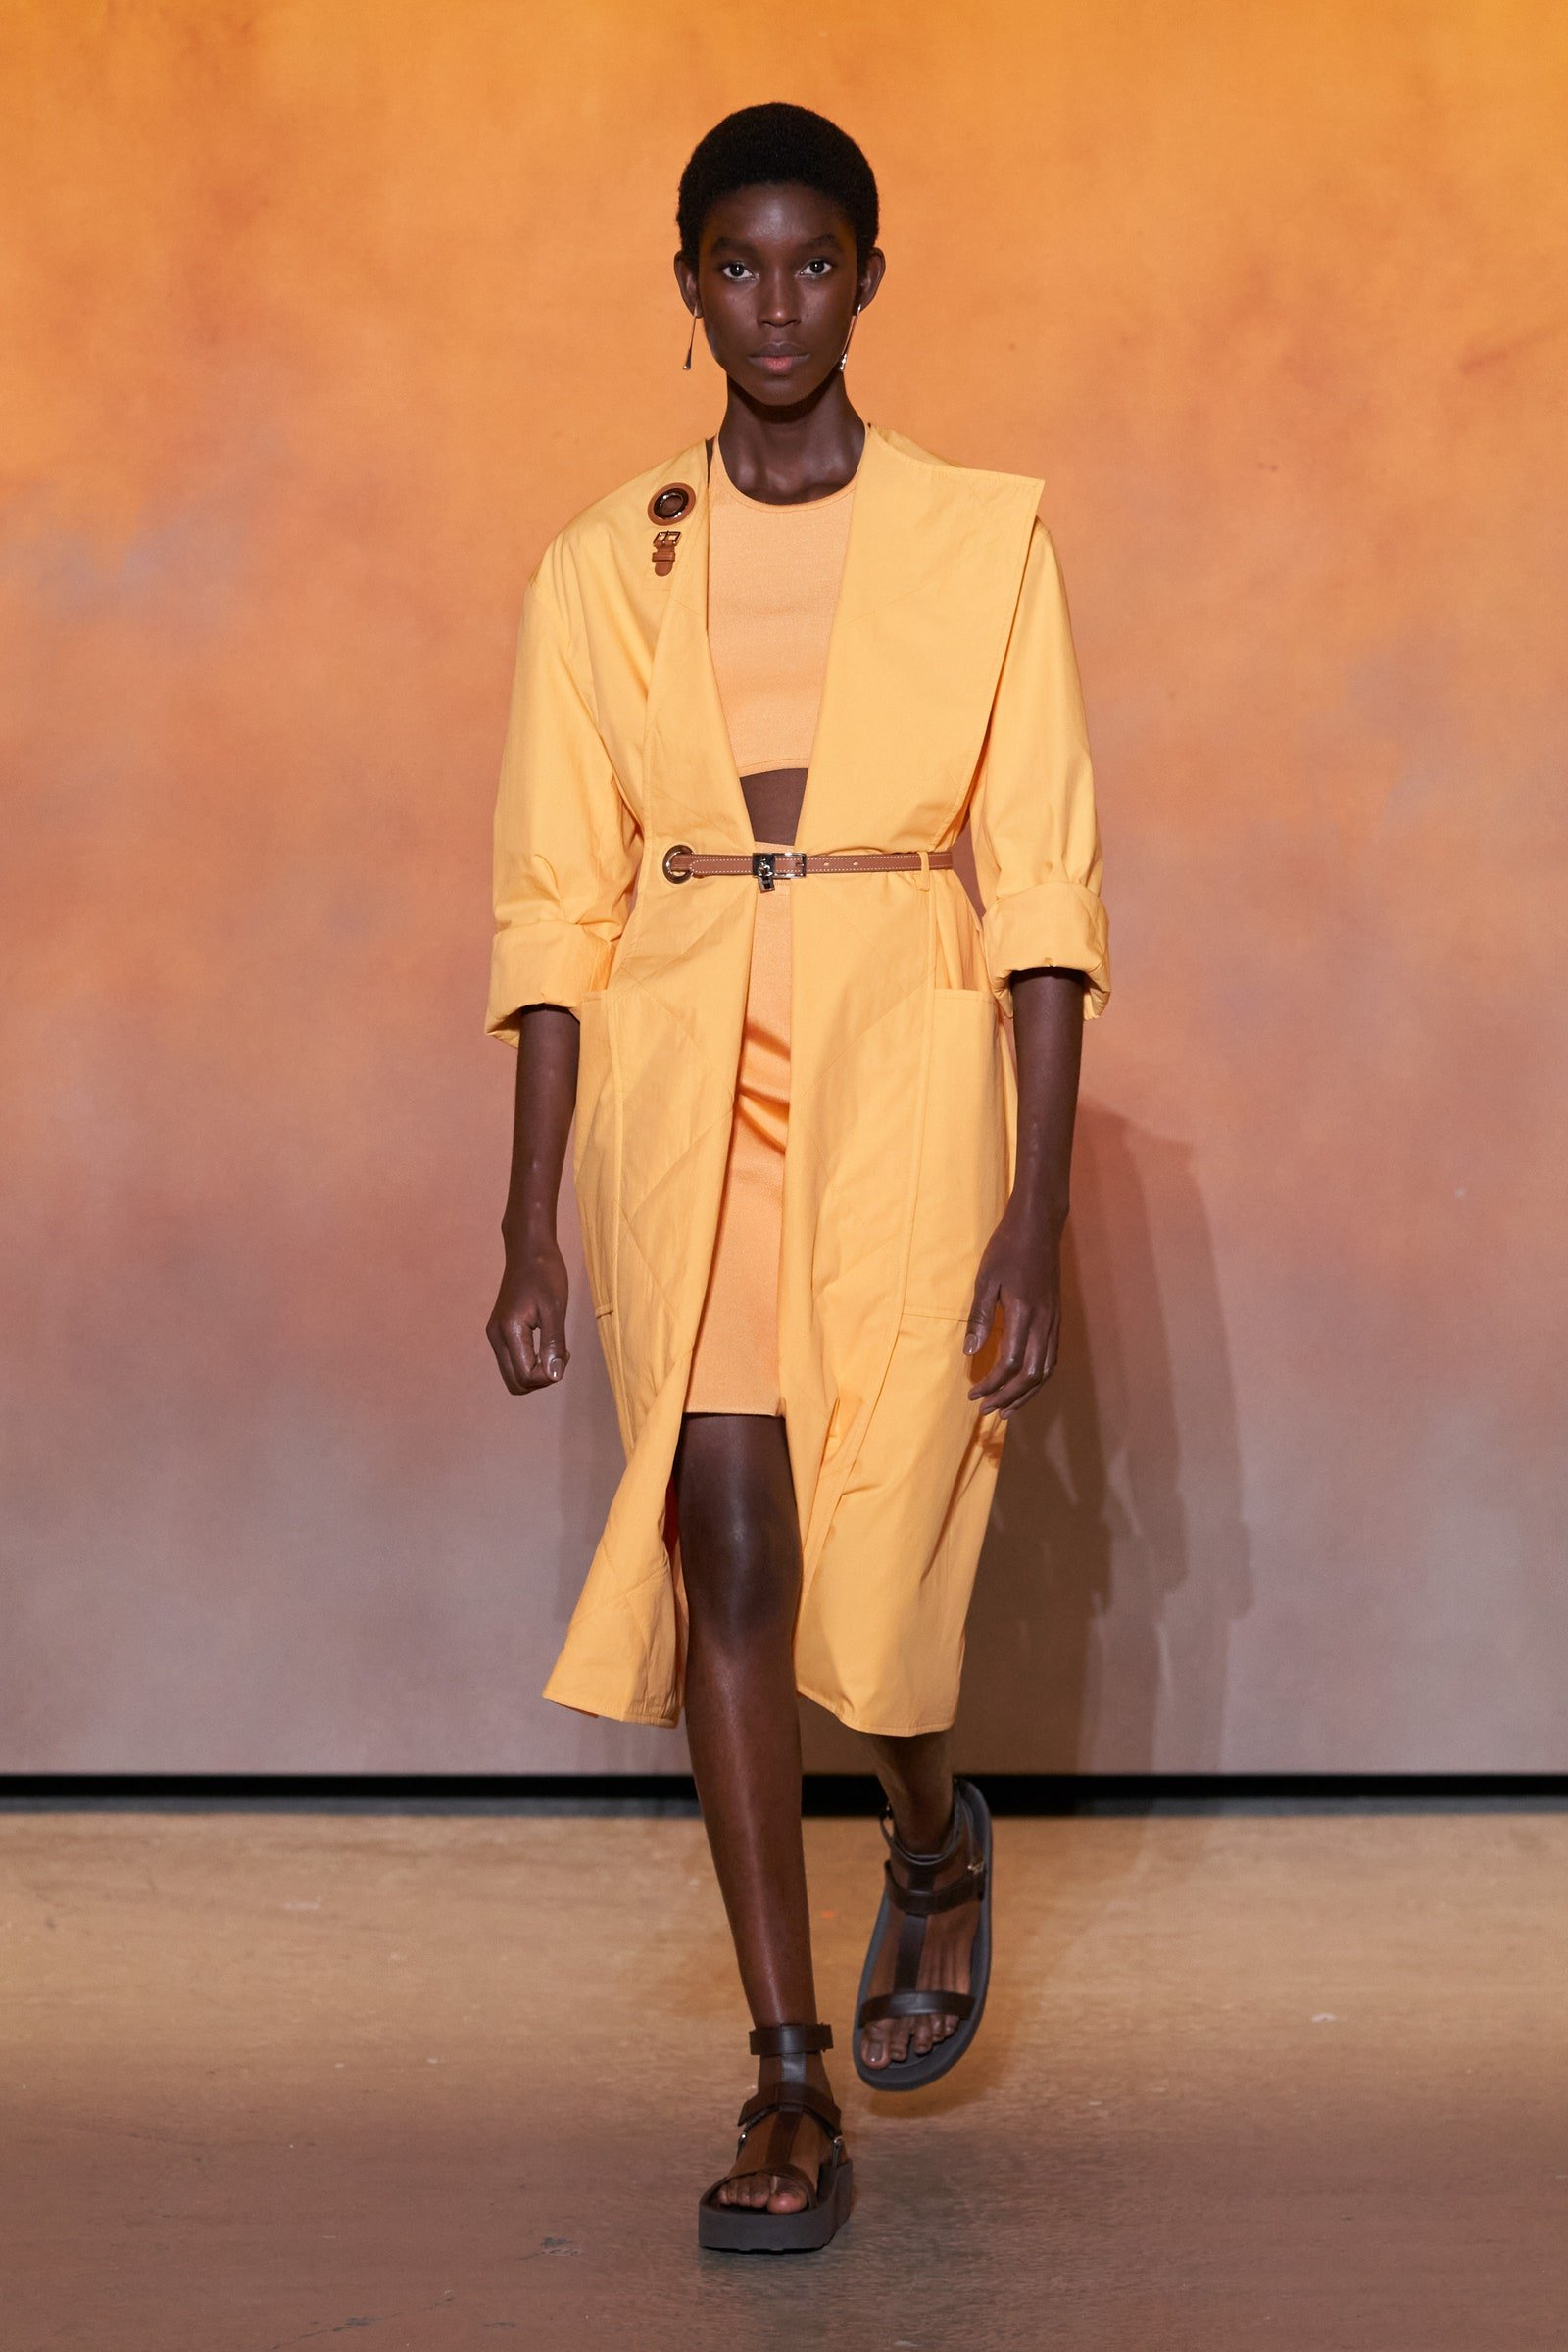 Hermes spring/summer 2022 collection